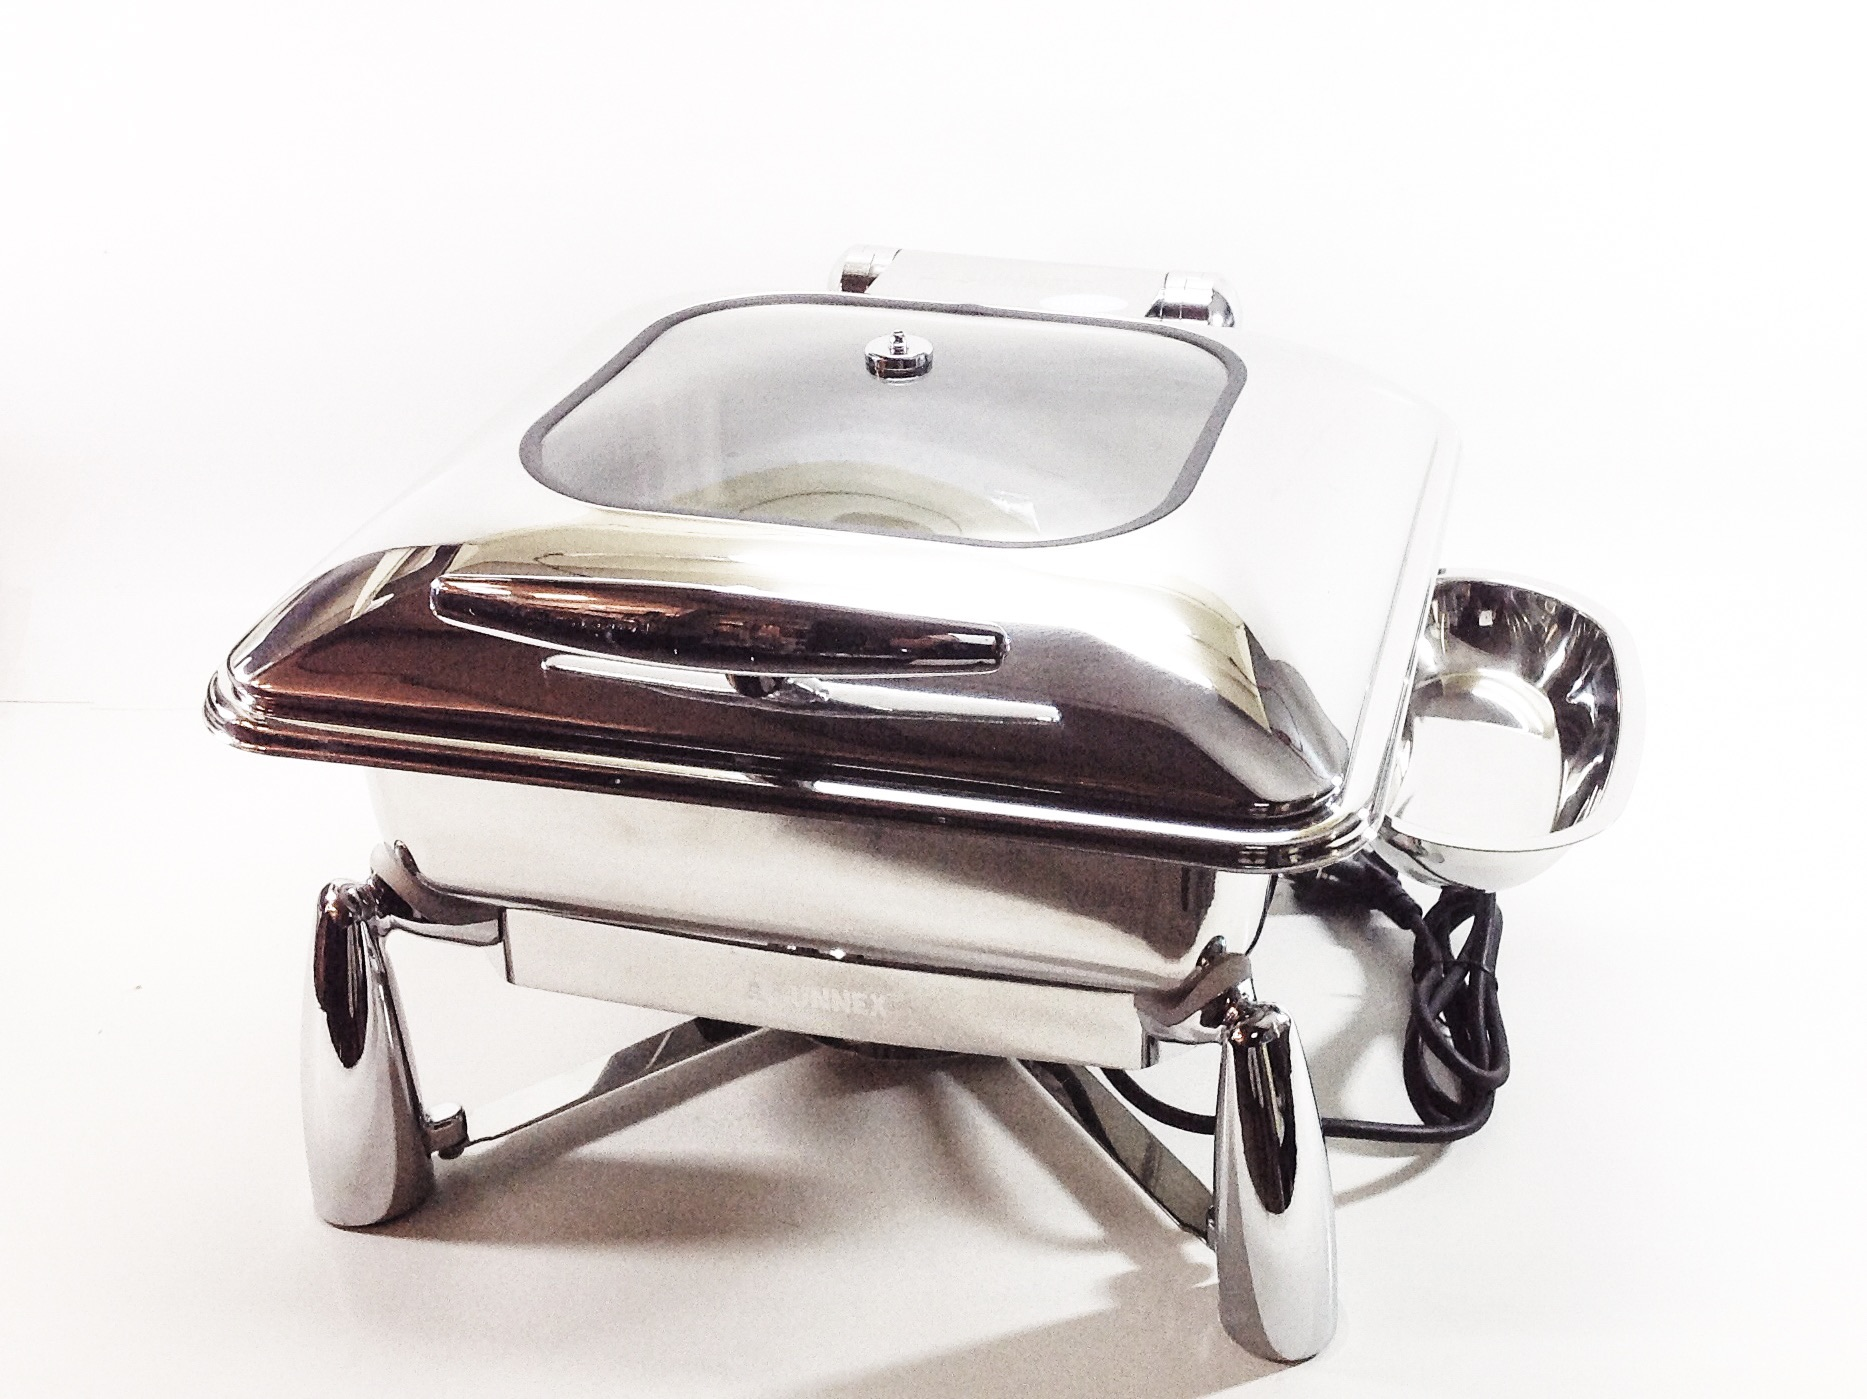 Oslo Electric Square Chafing Dish 5,5 ltr image